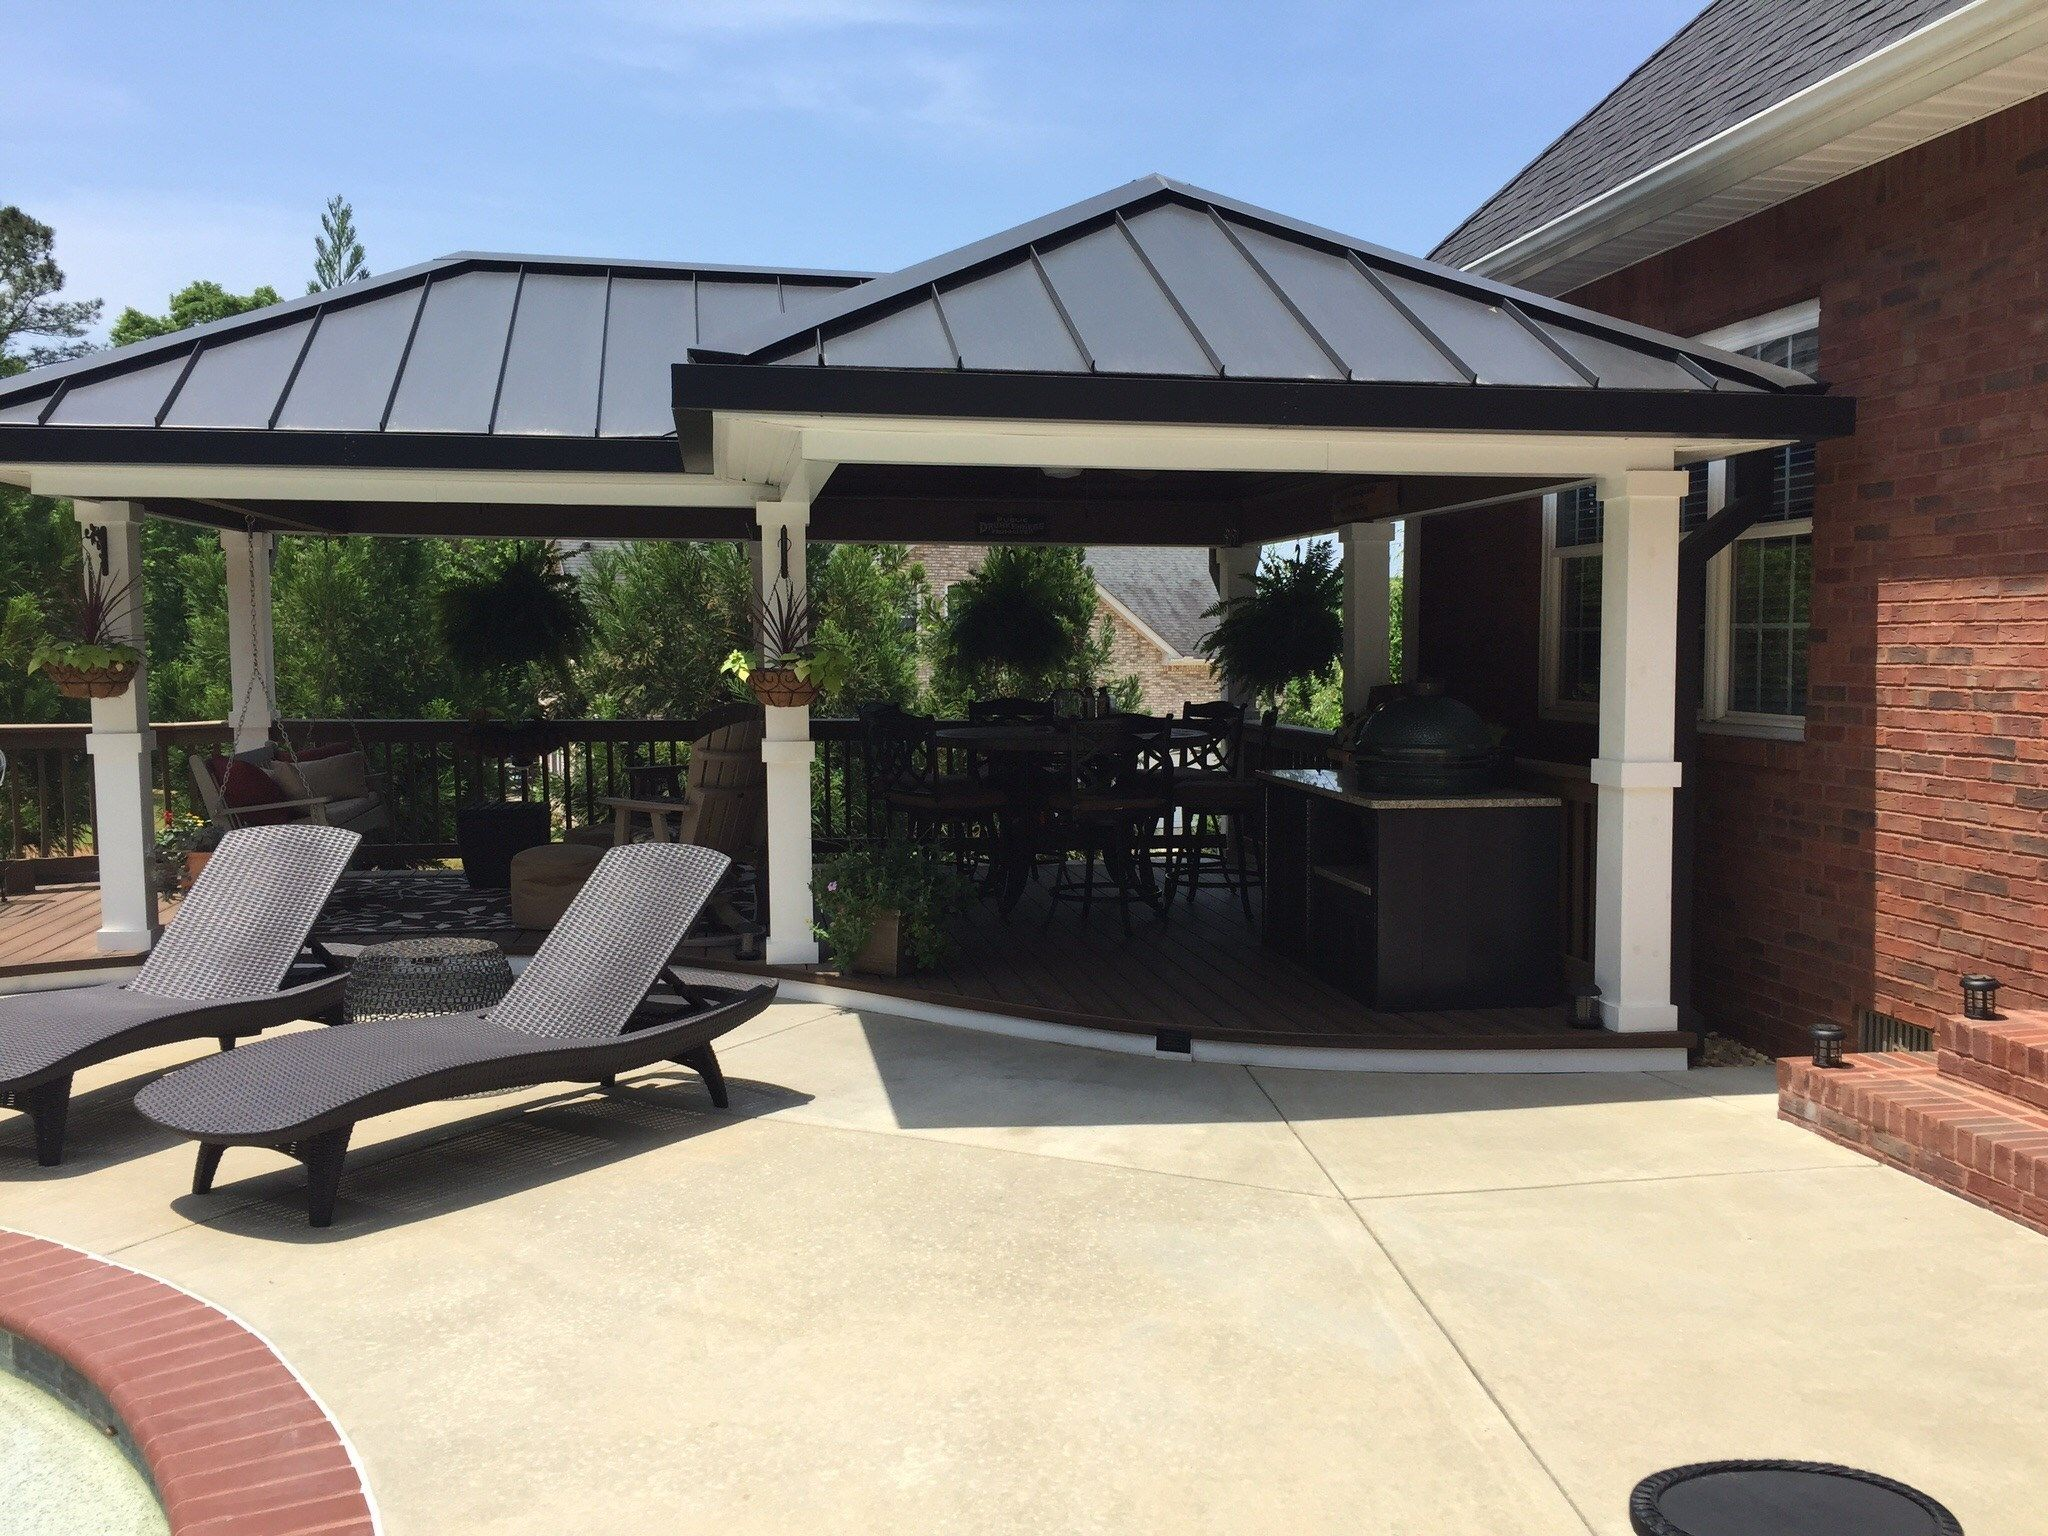 Deck and gazebo - Picture 1186